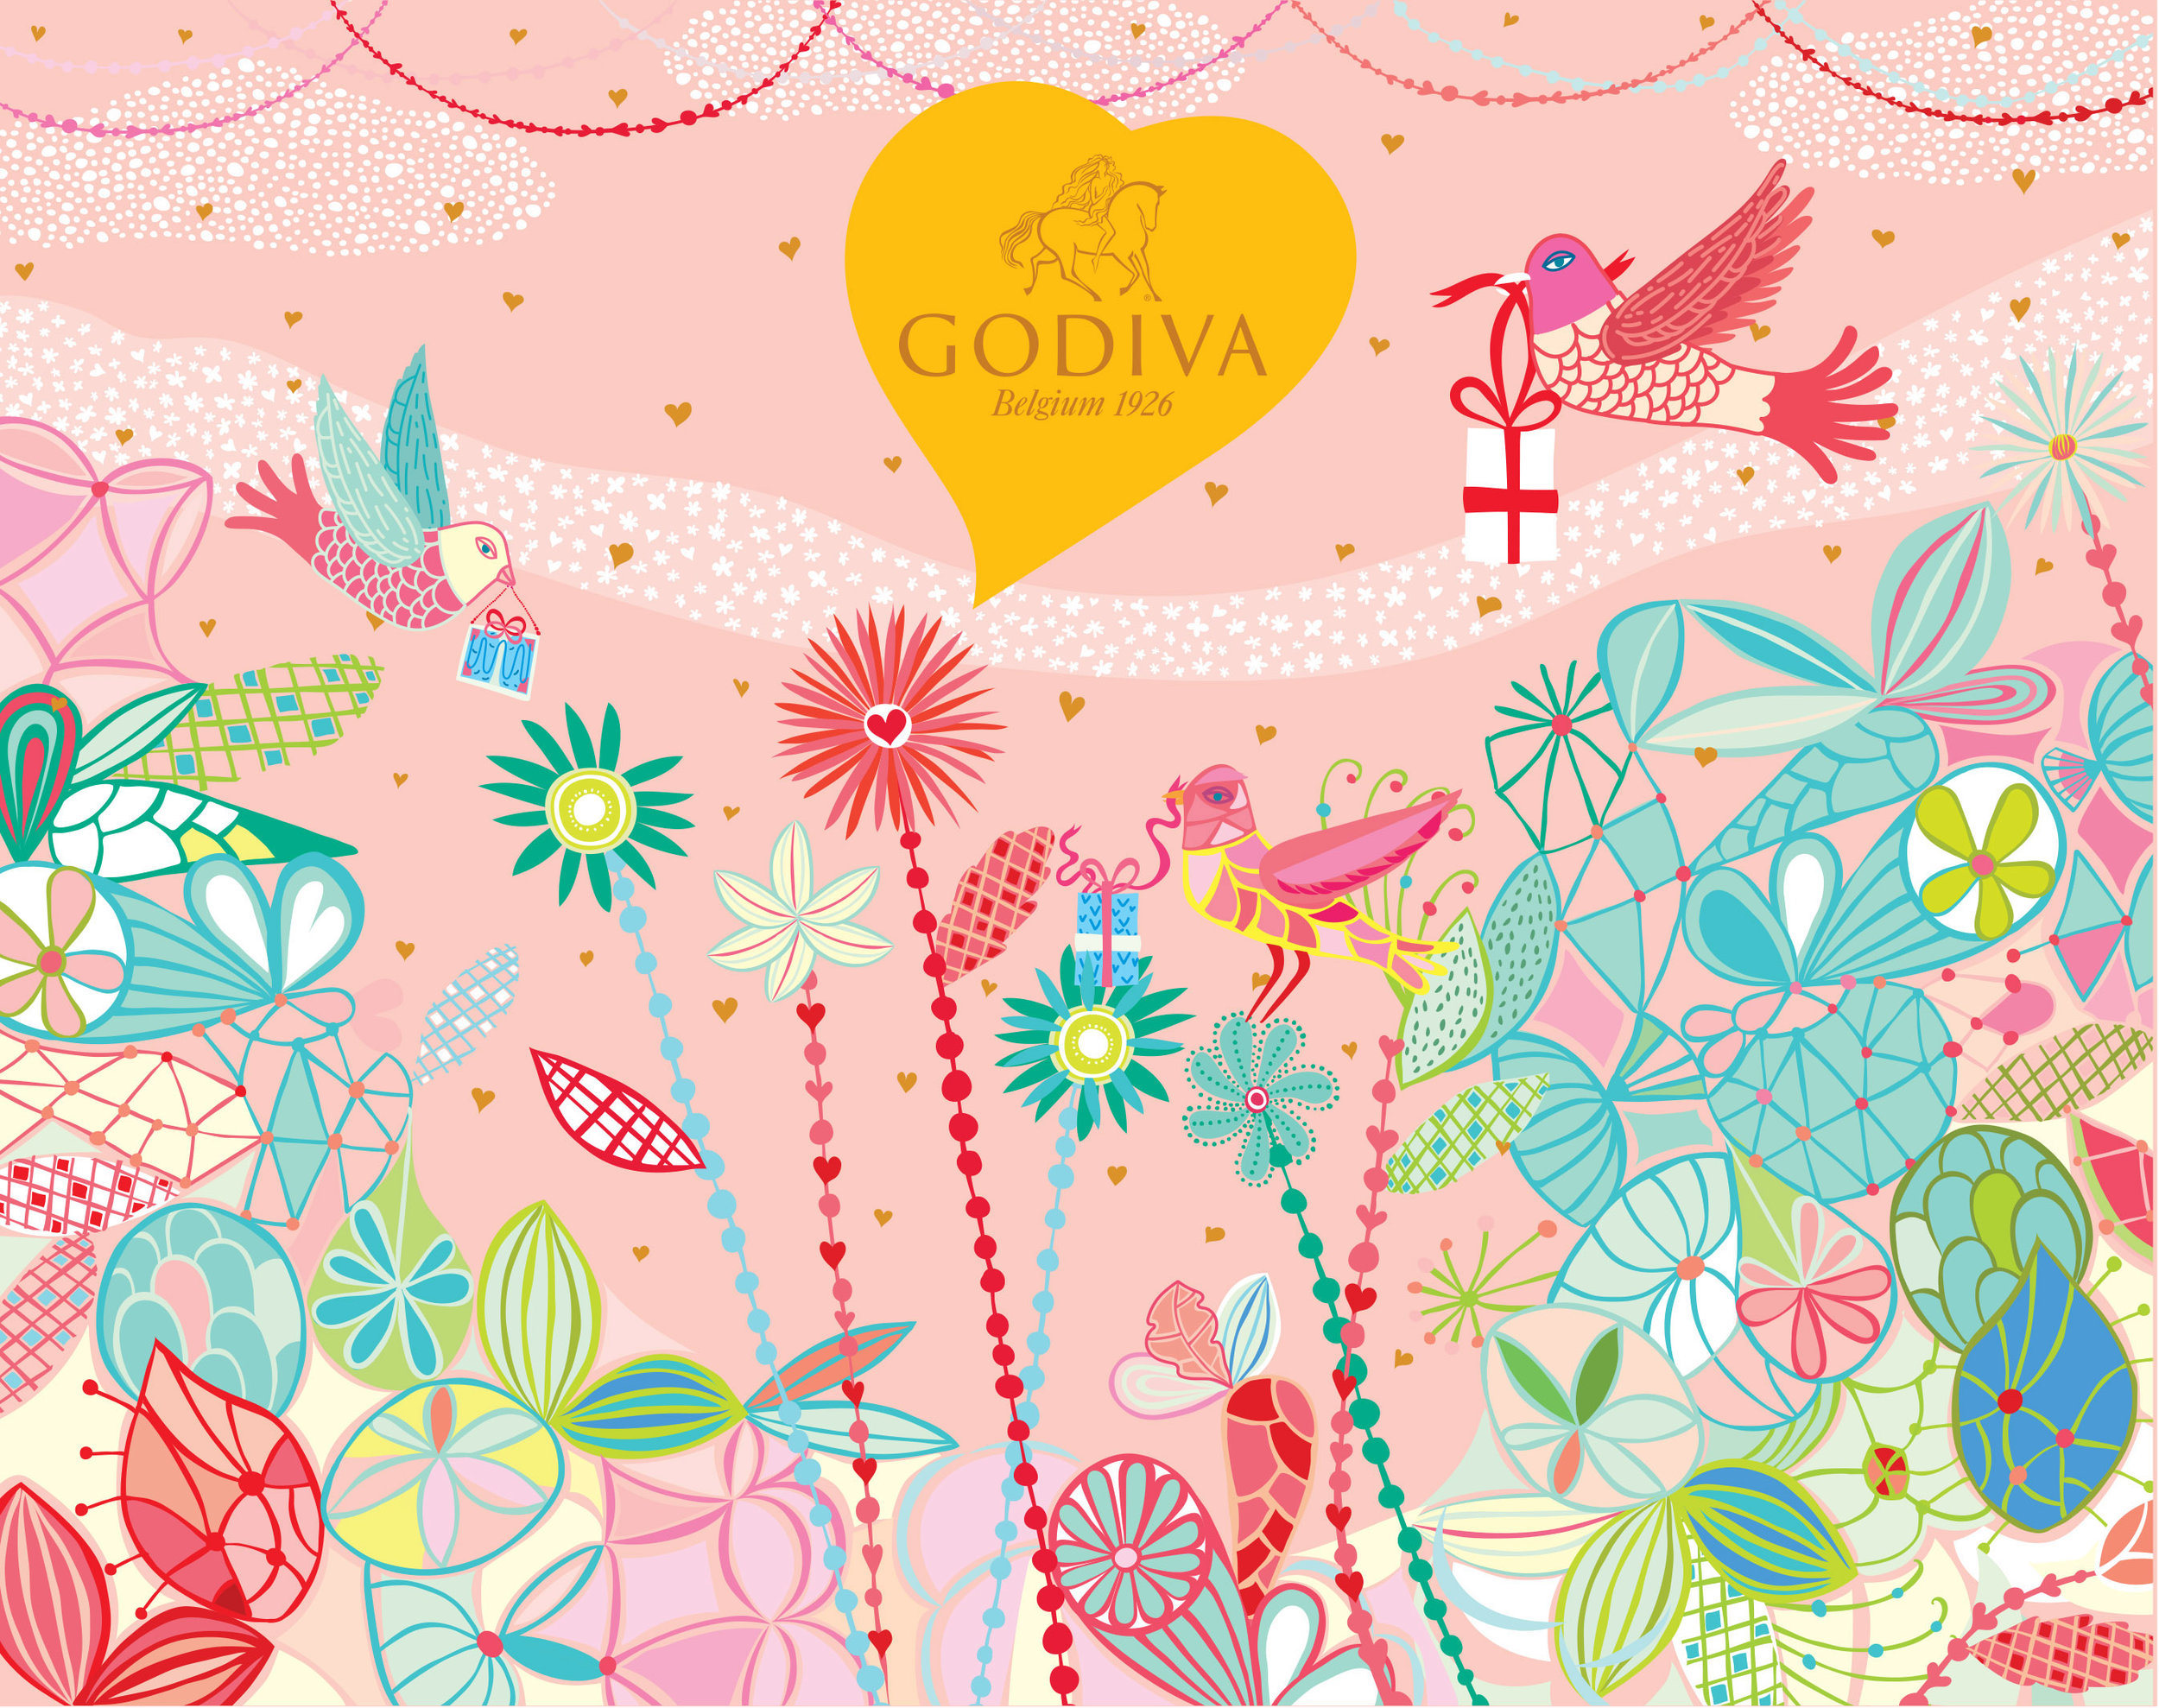 Godiva Chocolate White Day Packaging